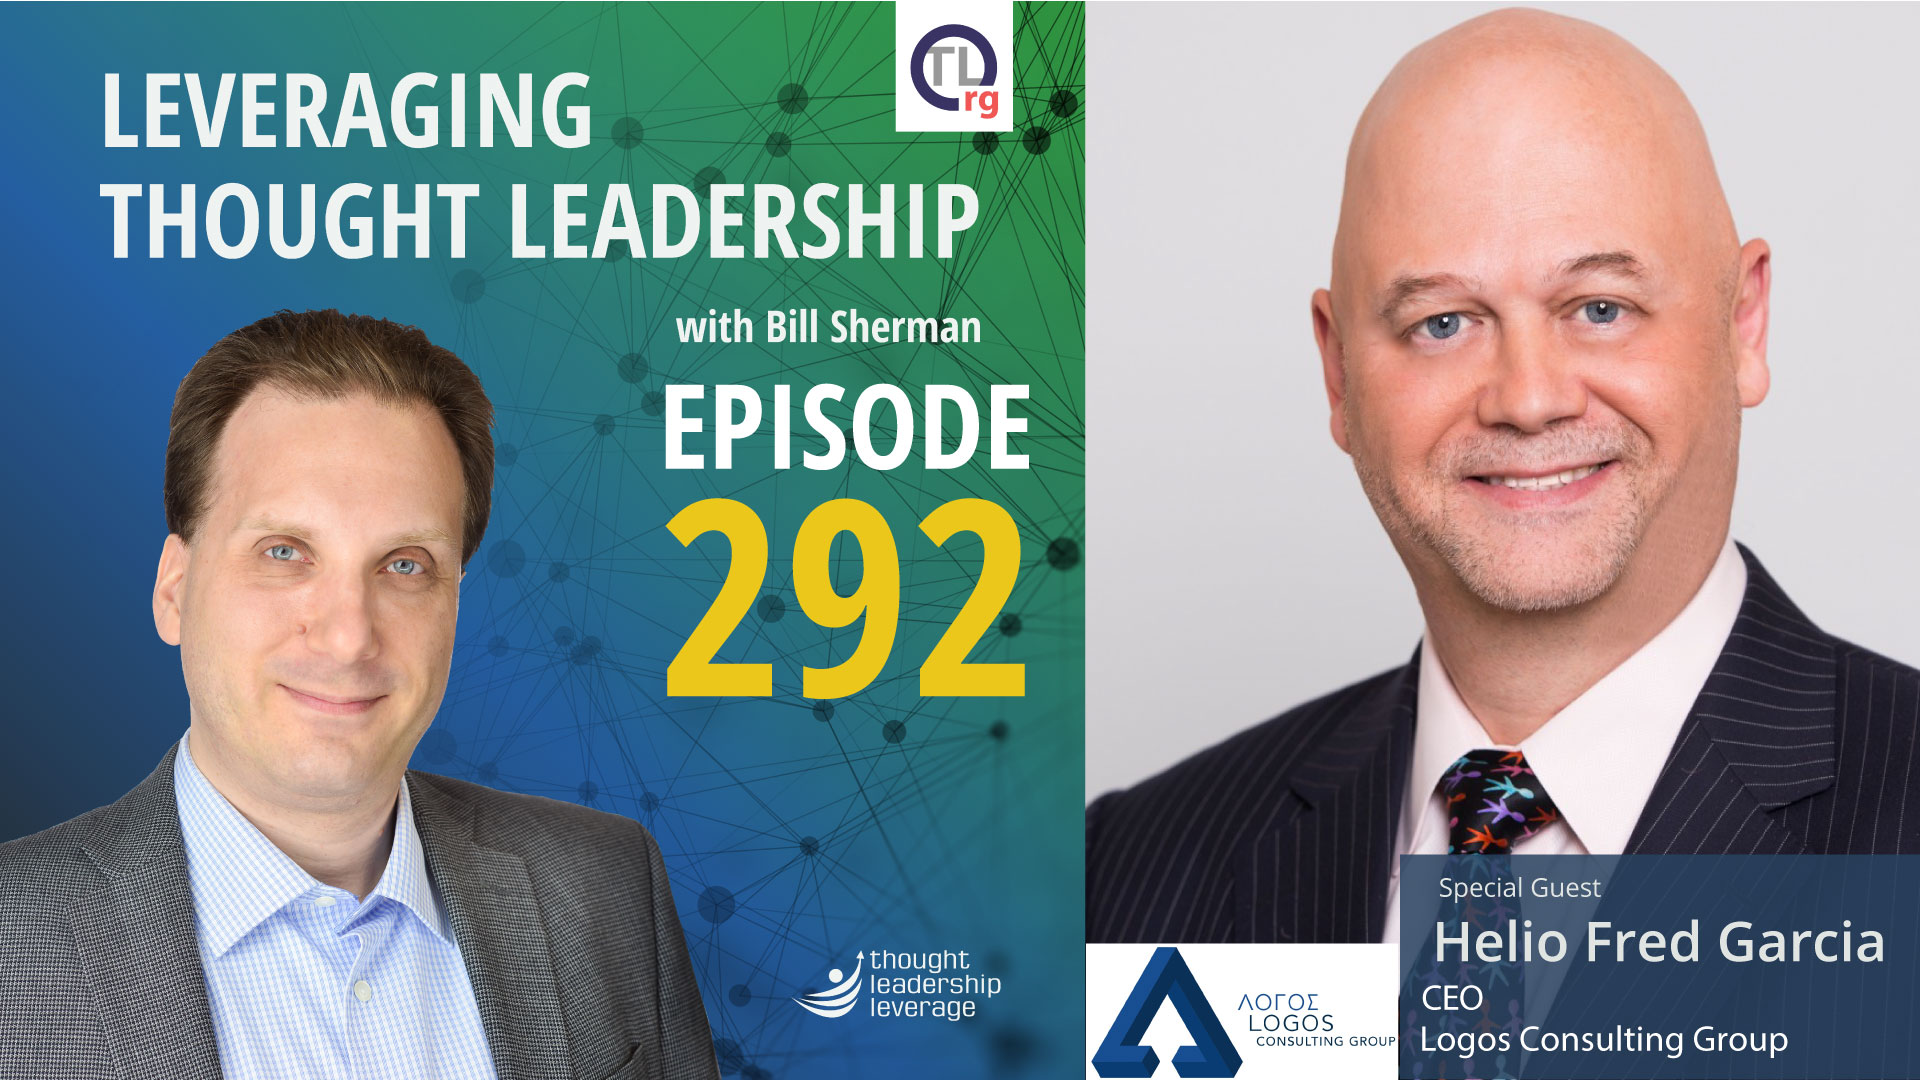 LOGOS IN THE NEWS: Helio Fred Garcia Interviewed on Leveraging Thought Leadership